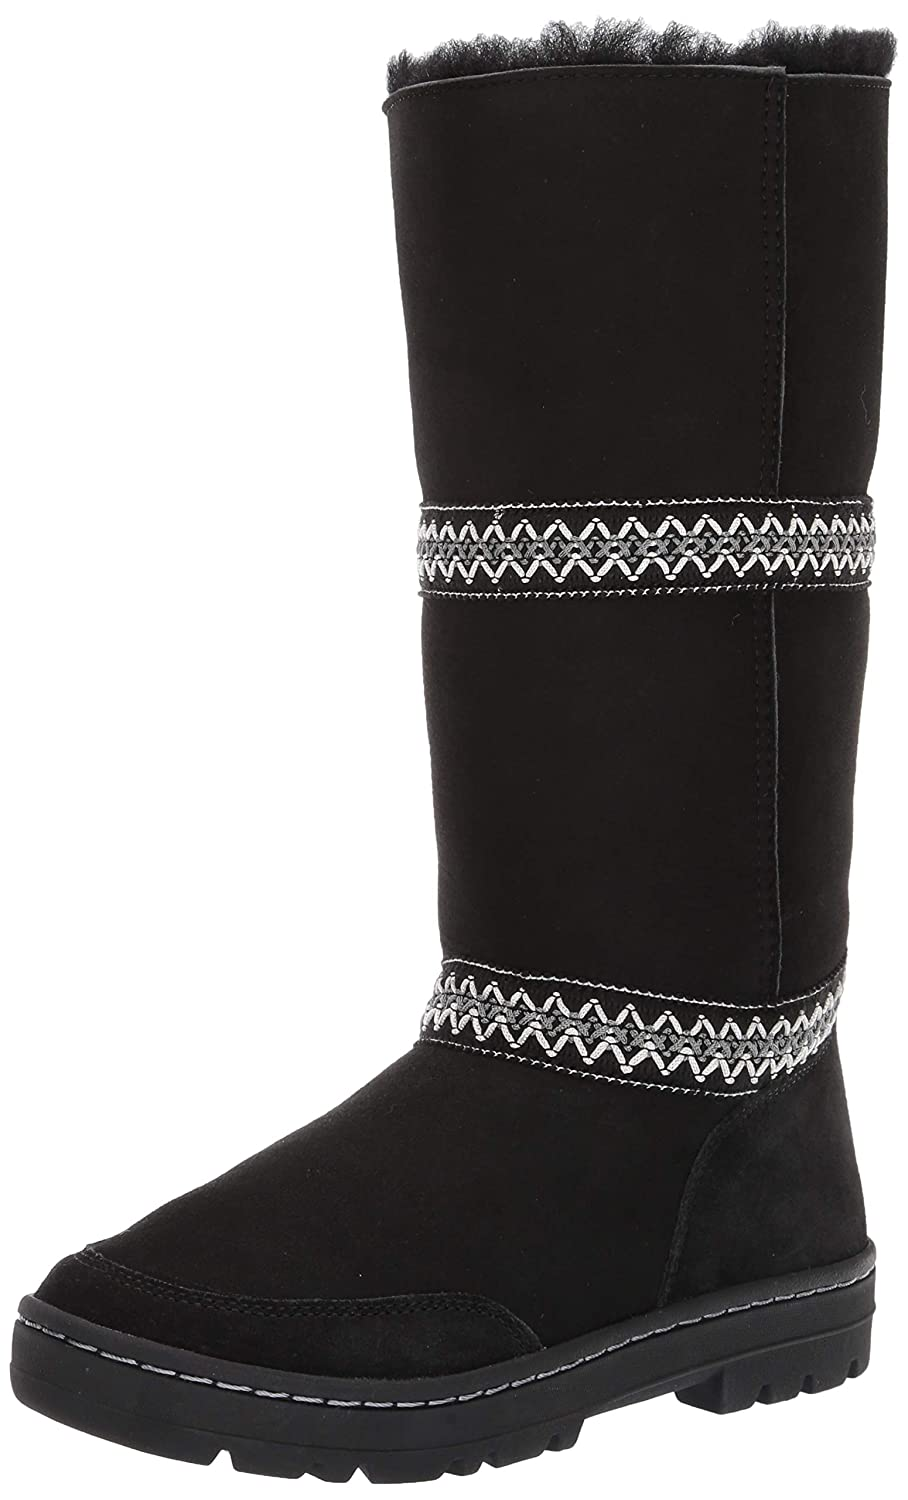 492d10c15c2 UGG Women's W Sundance Revival Fashion Boot